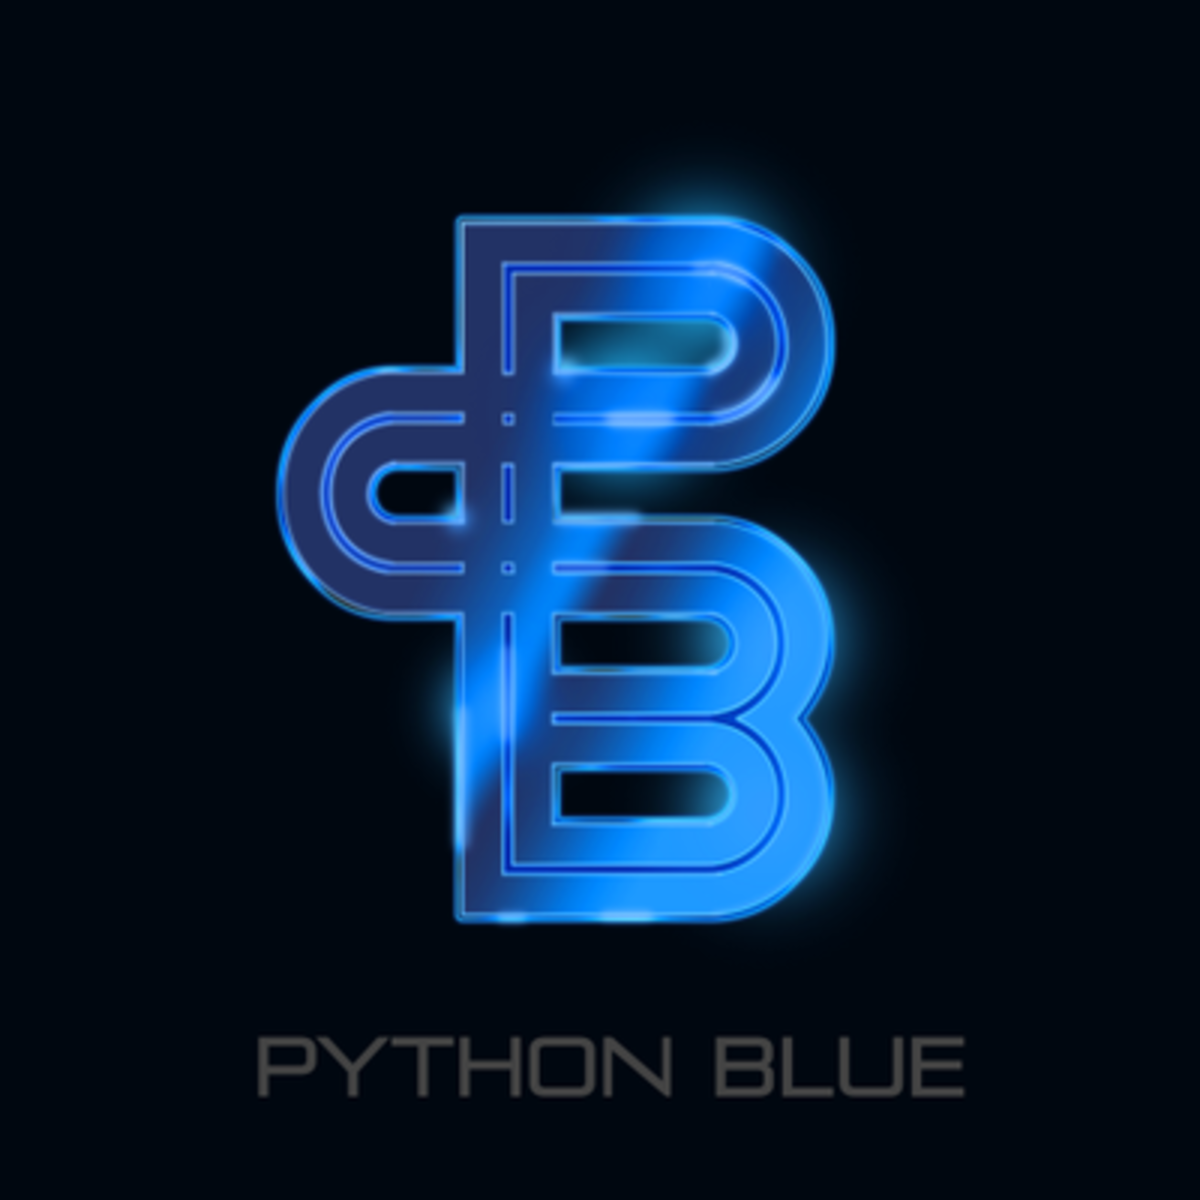 An Interview With Composer for Media Python Blue